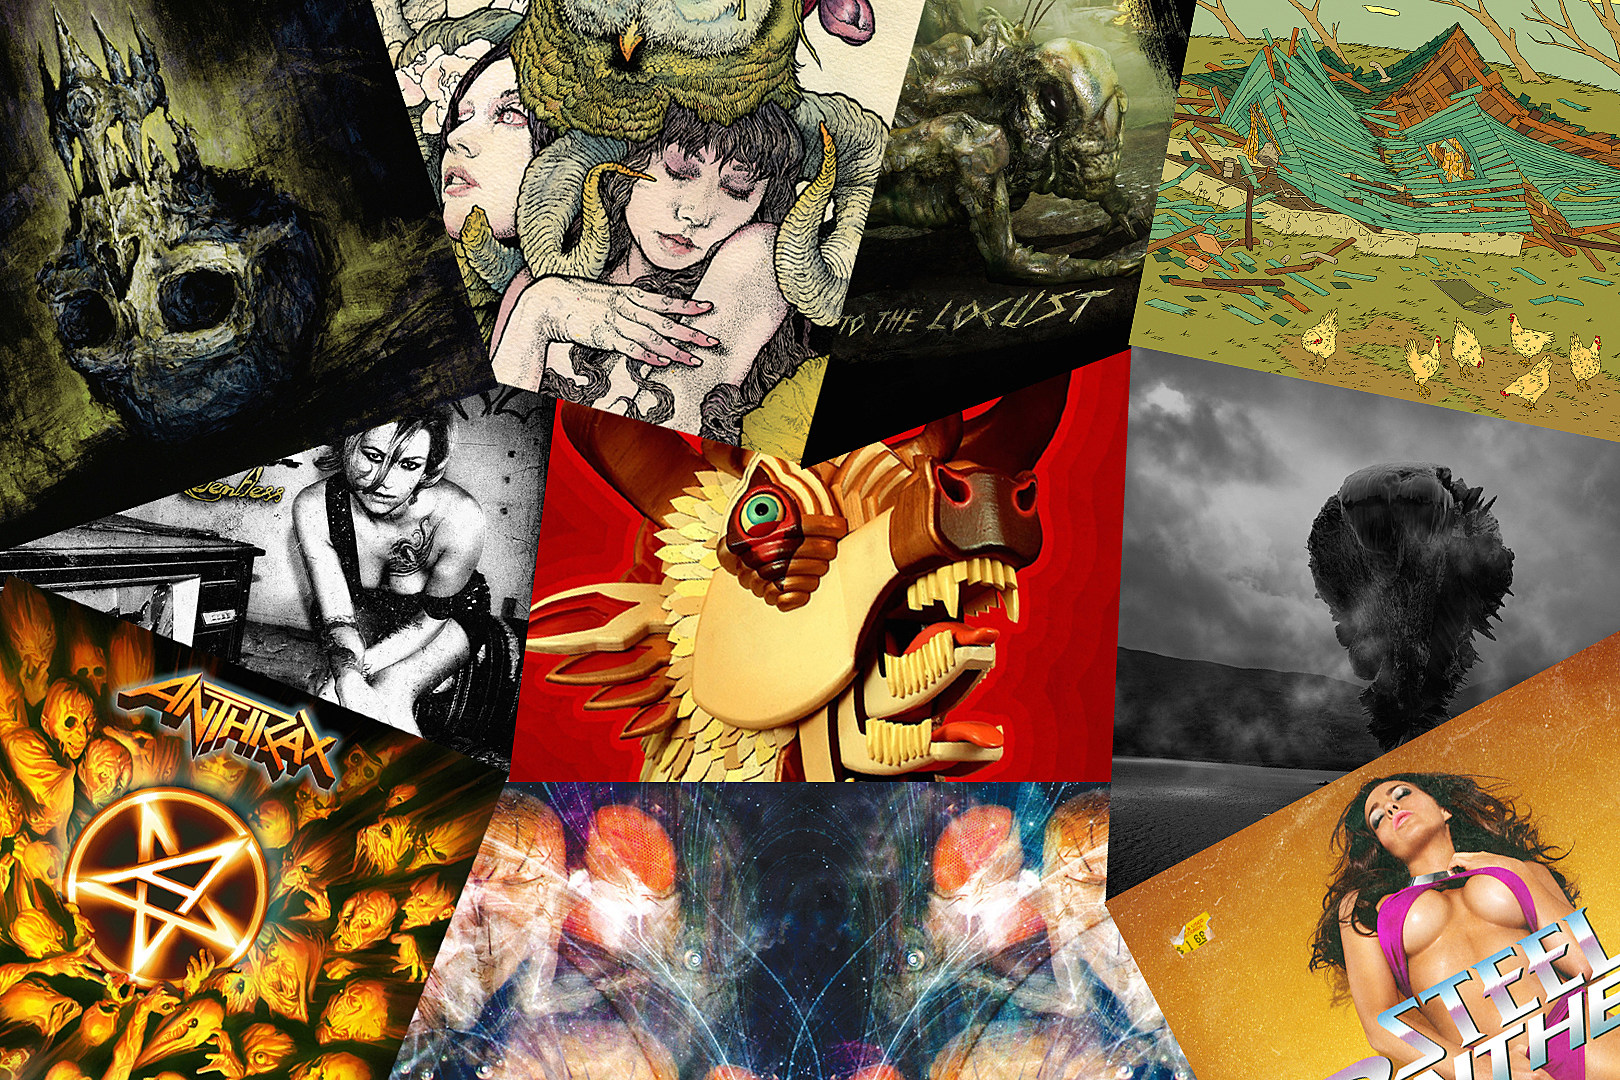 The 25 Best Metal Albums of 2011